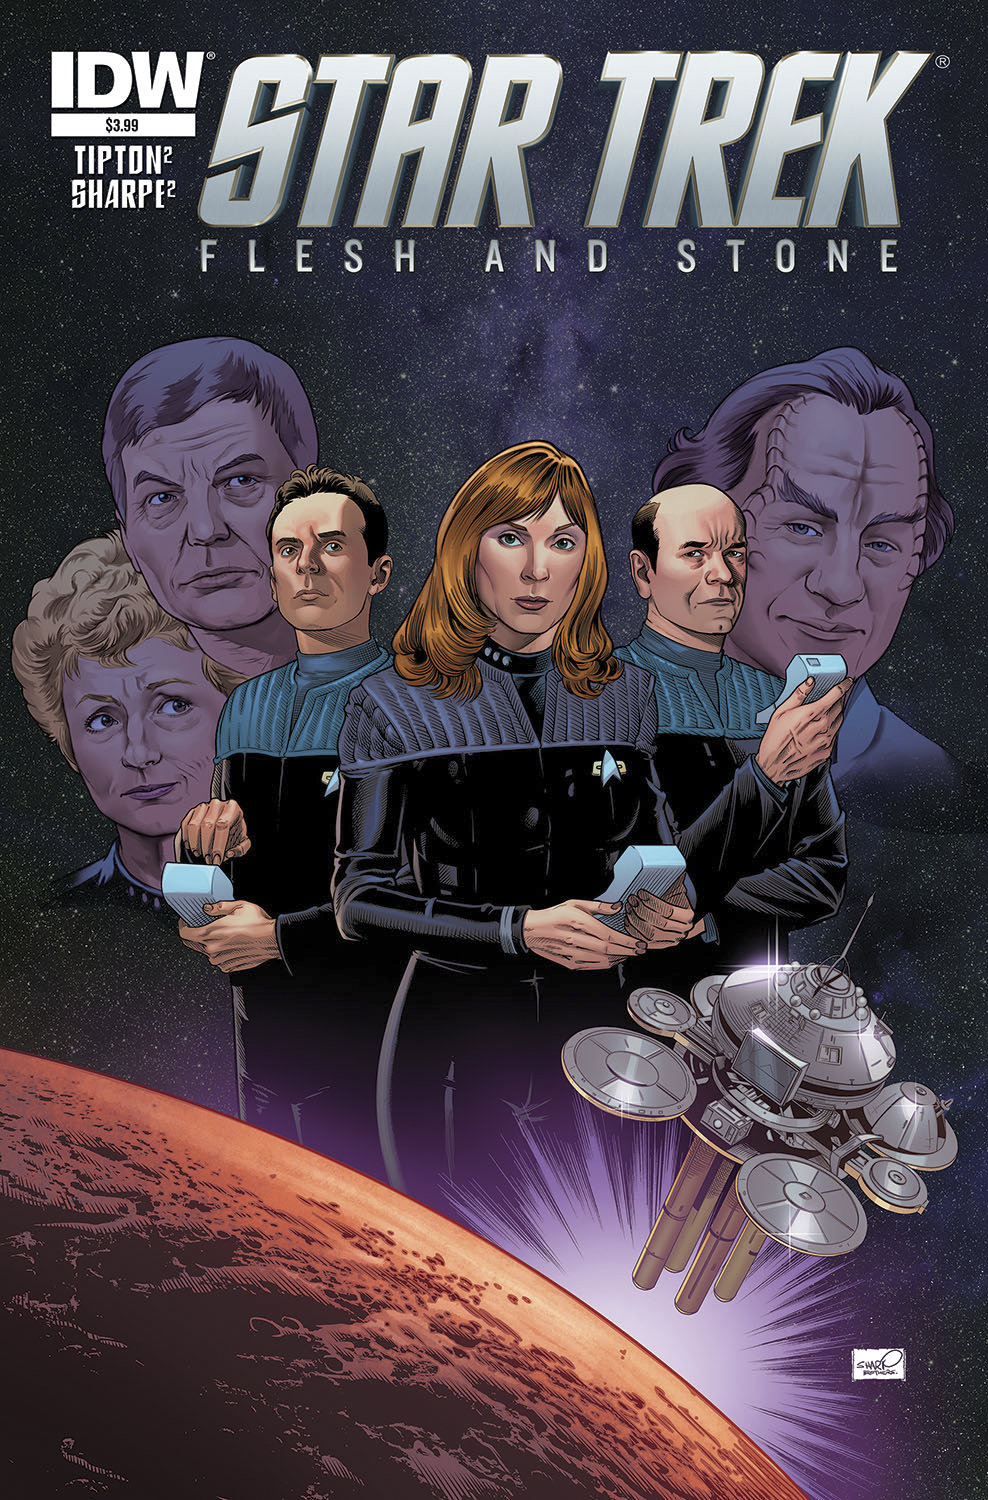 STAR TREK SPECIAL FLESH & STONE #1